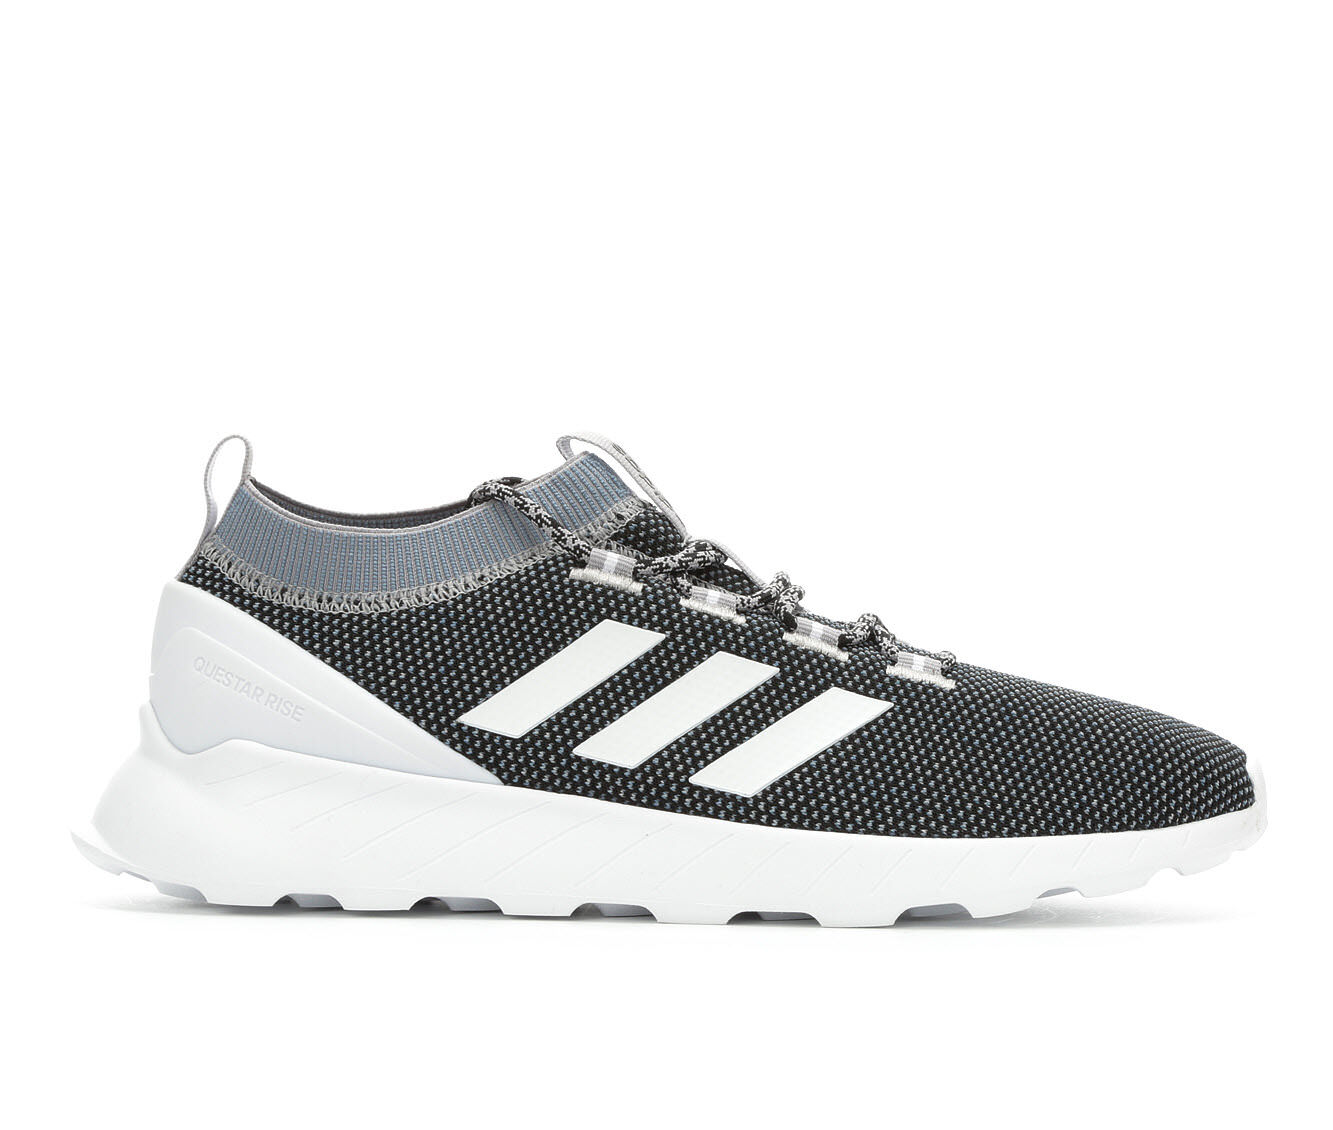 choose new style Men's Adidas Questar Rise Running Shoes Gry/Wht/Blk